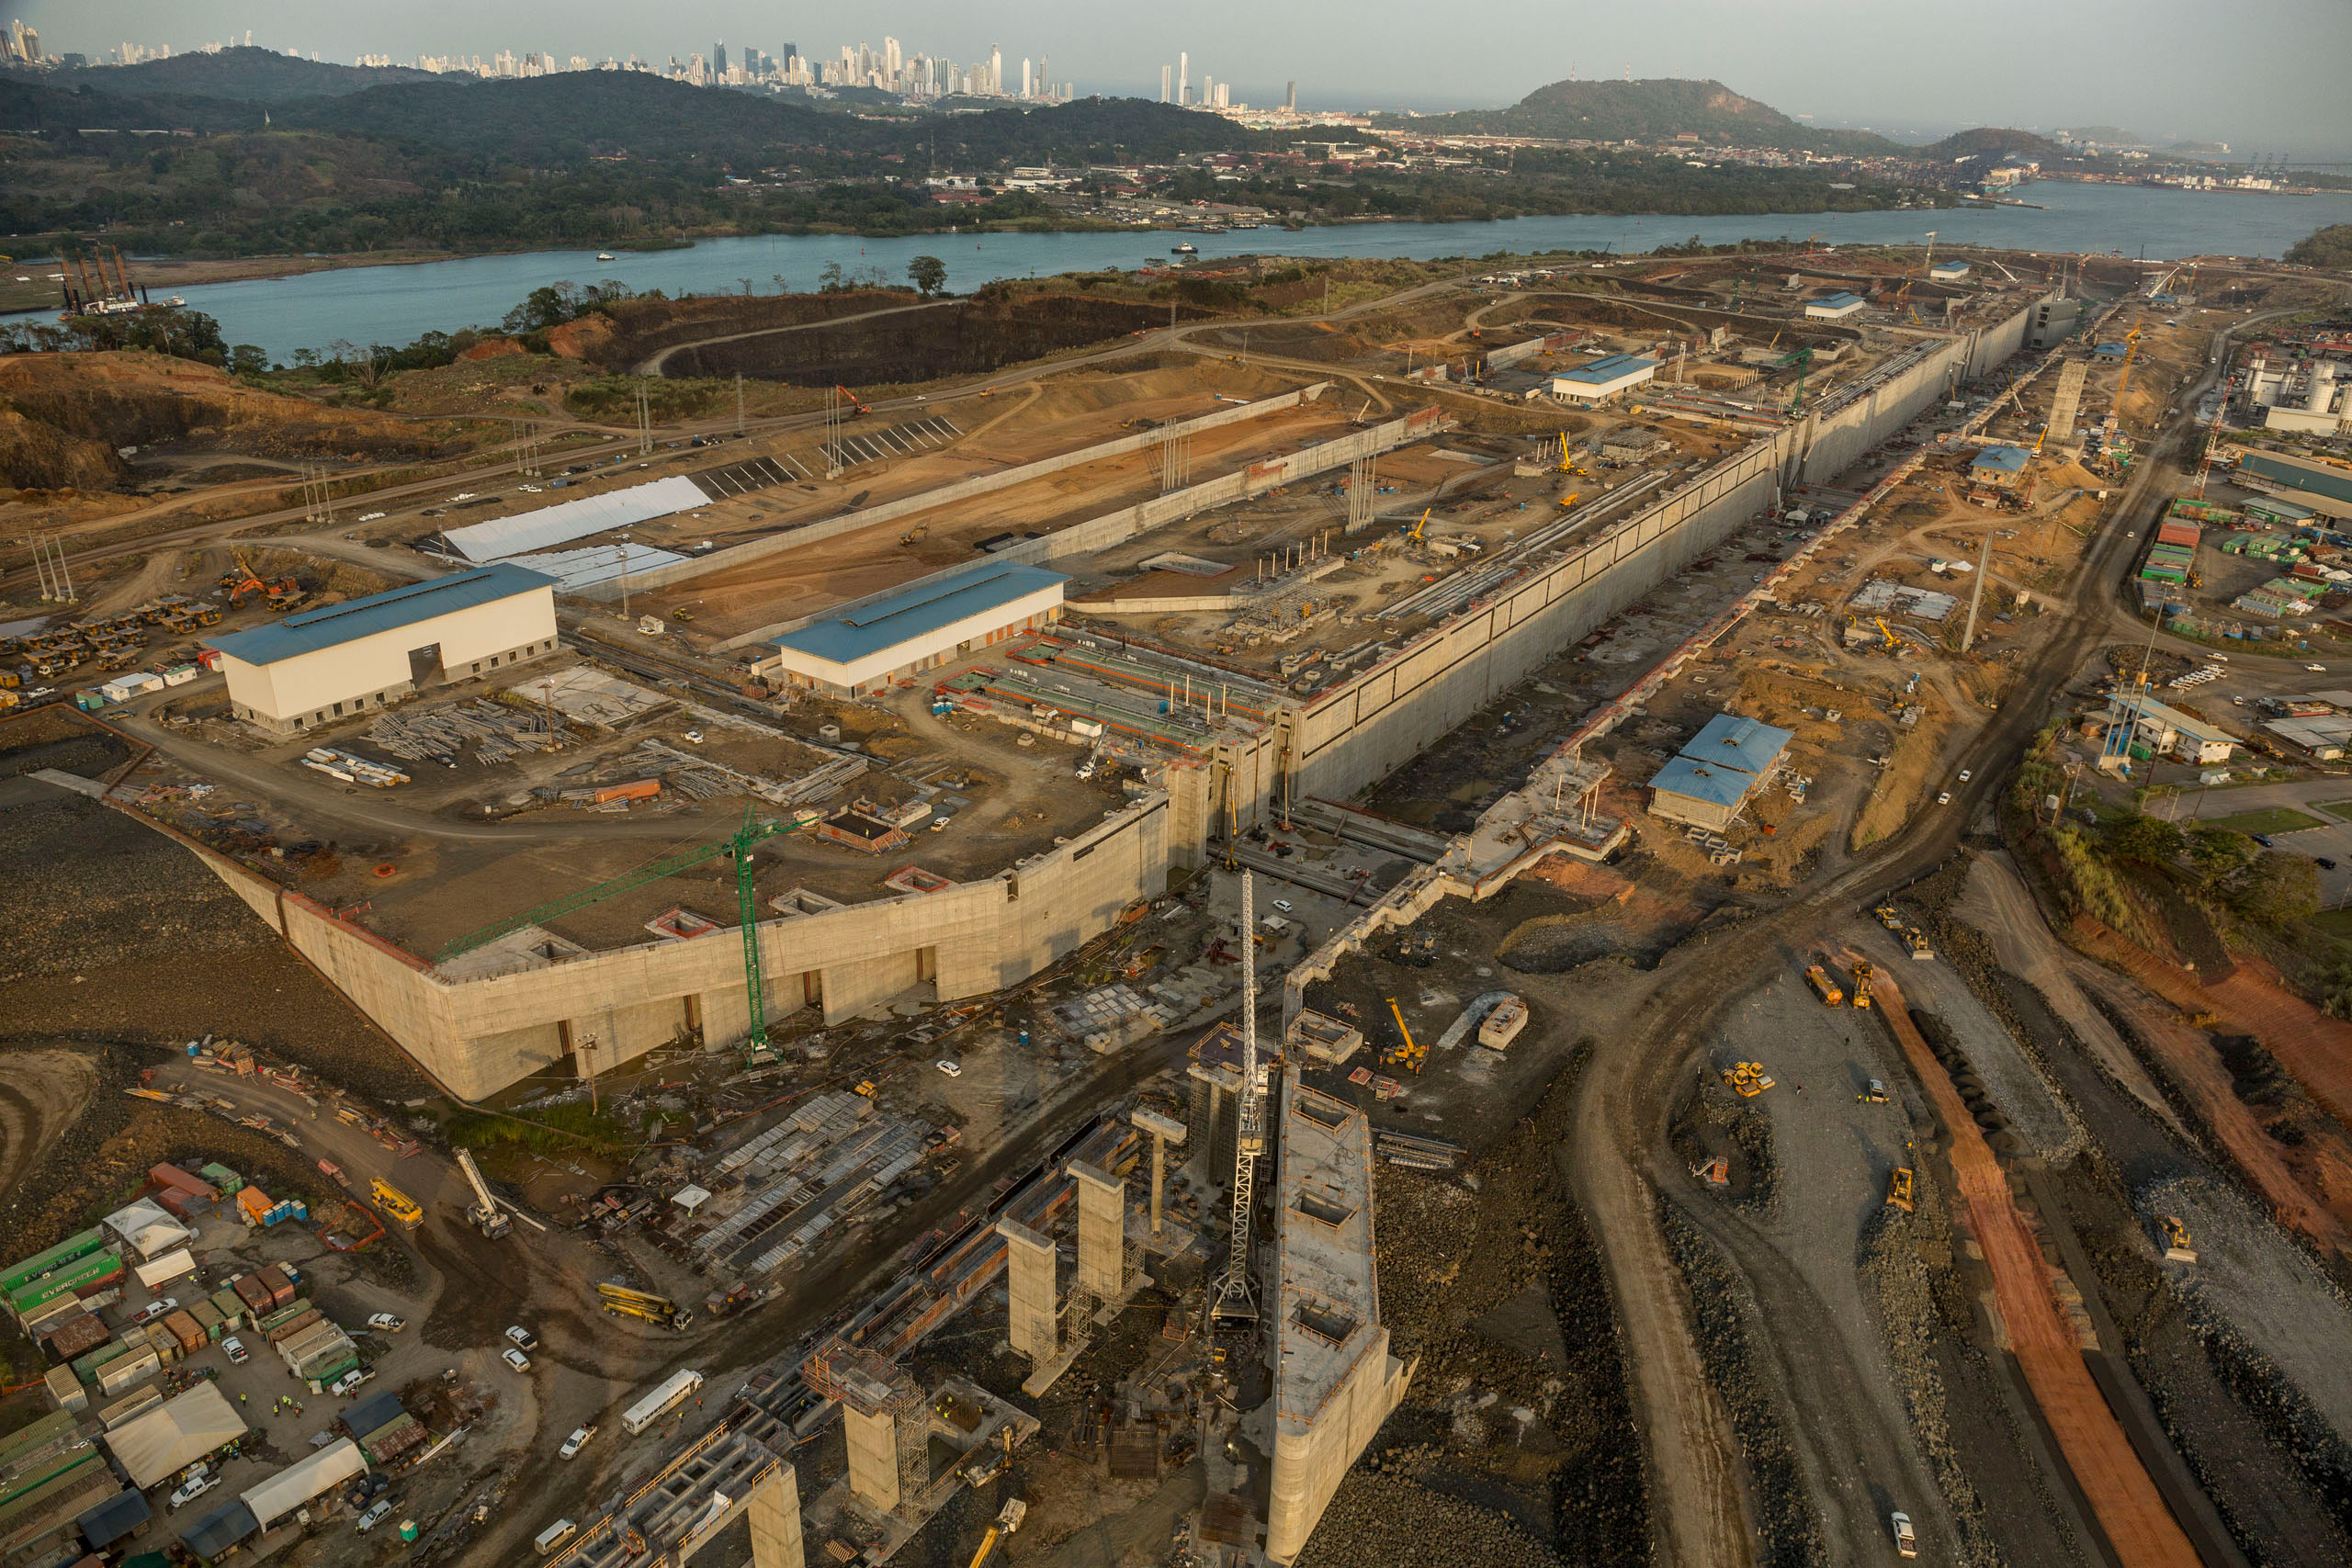 View of the Panama Canal Expansion project on the Pacific side, April 23, 2015.